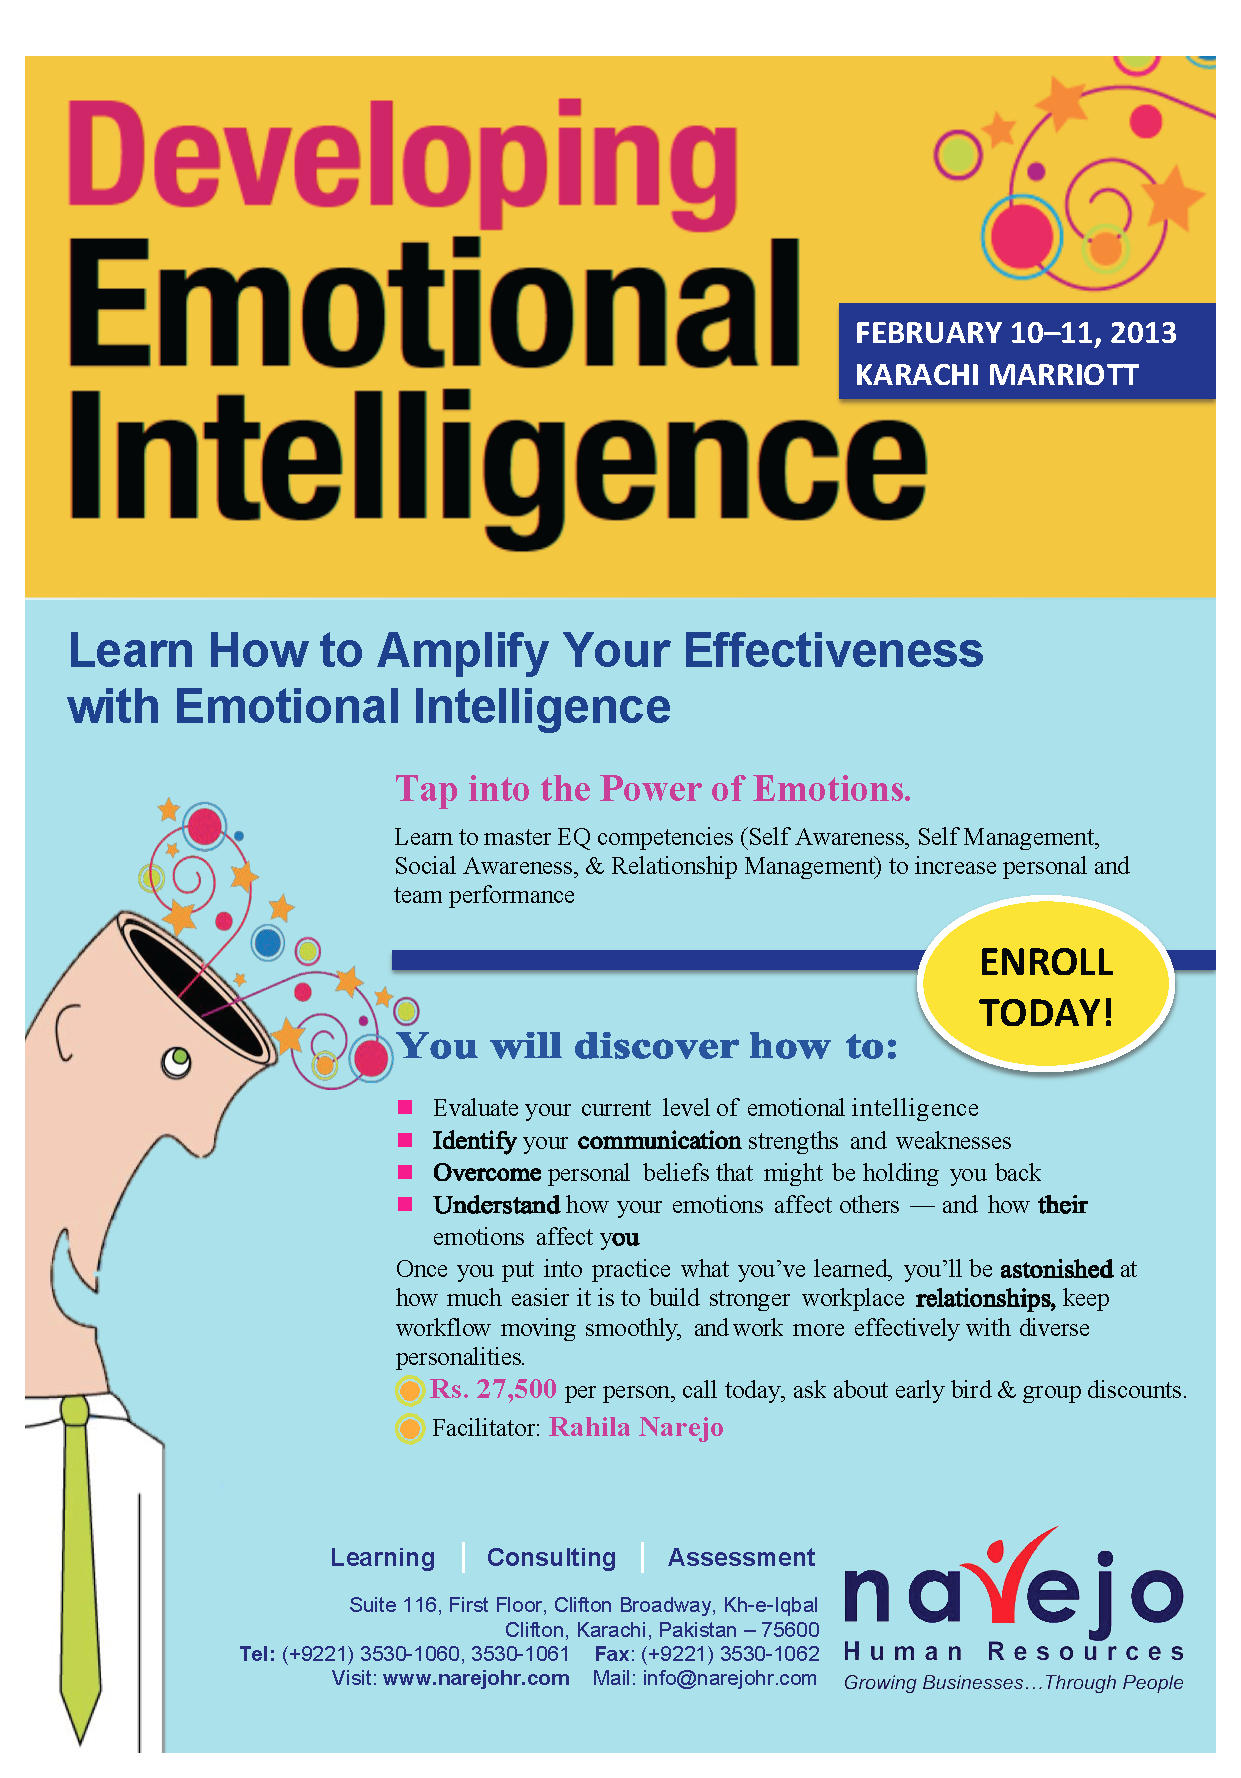 Pin By Stephanie De Los Santos On Emotional Intelligence Emotional Intelligence Emotions Psychology